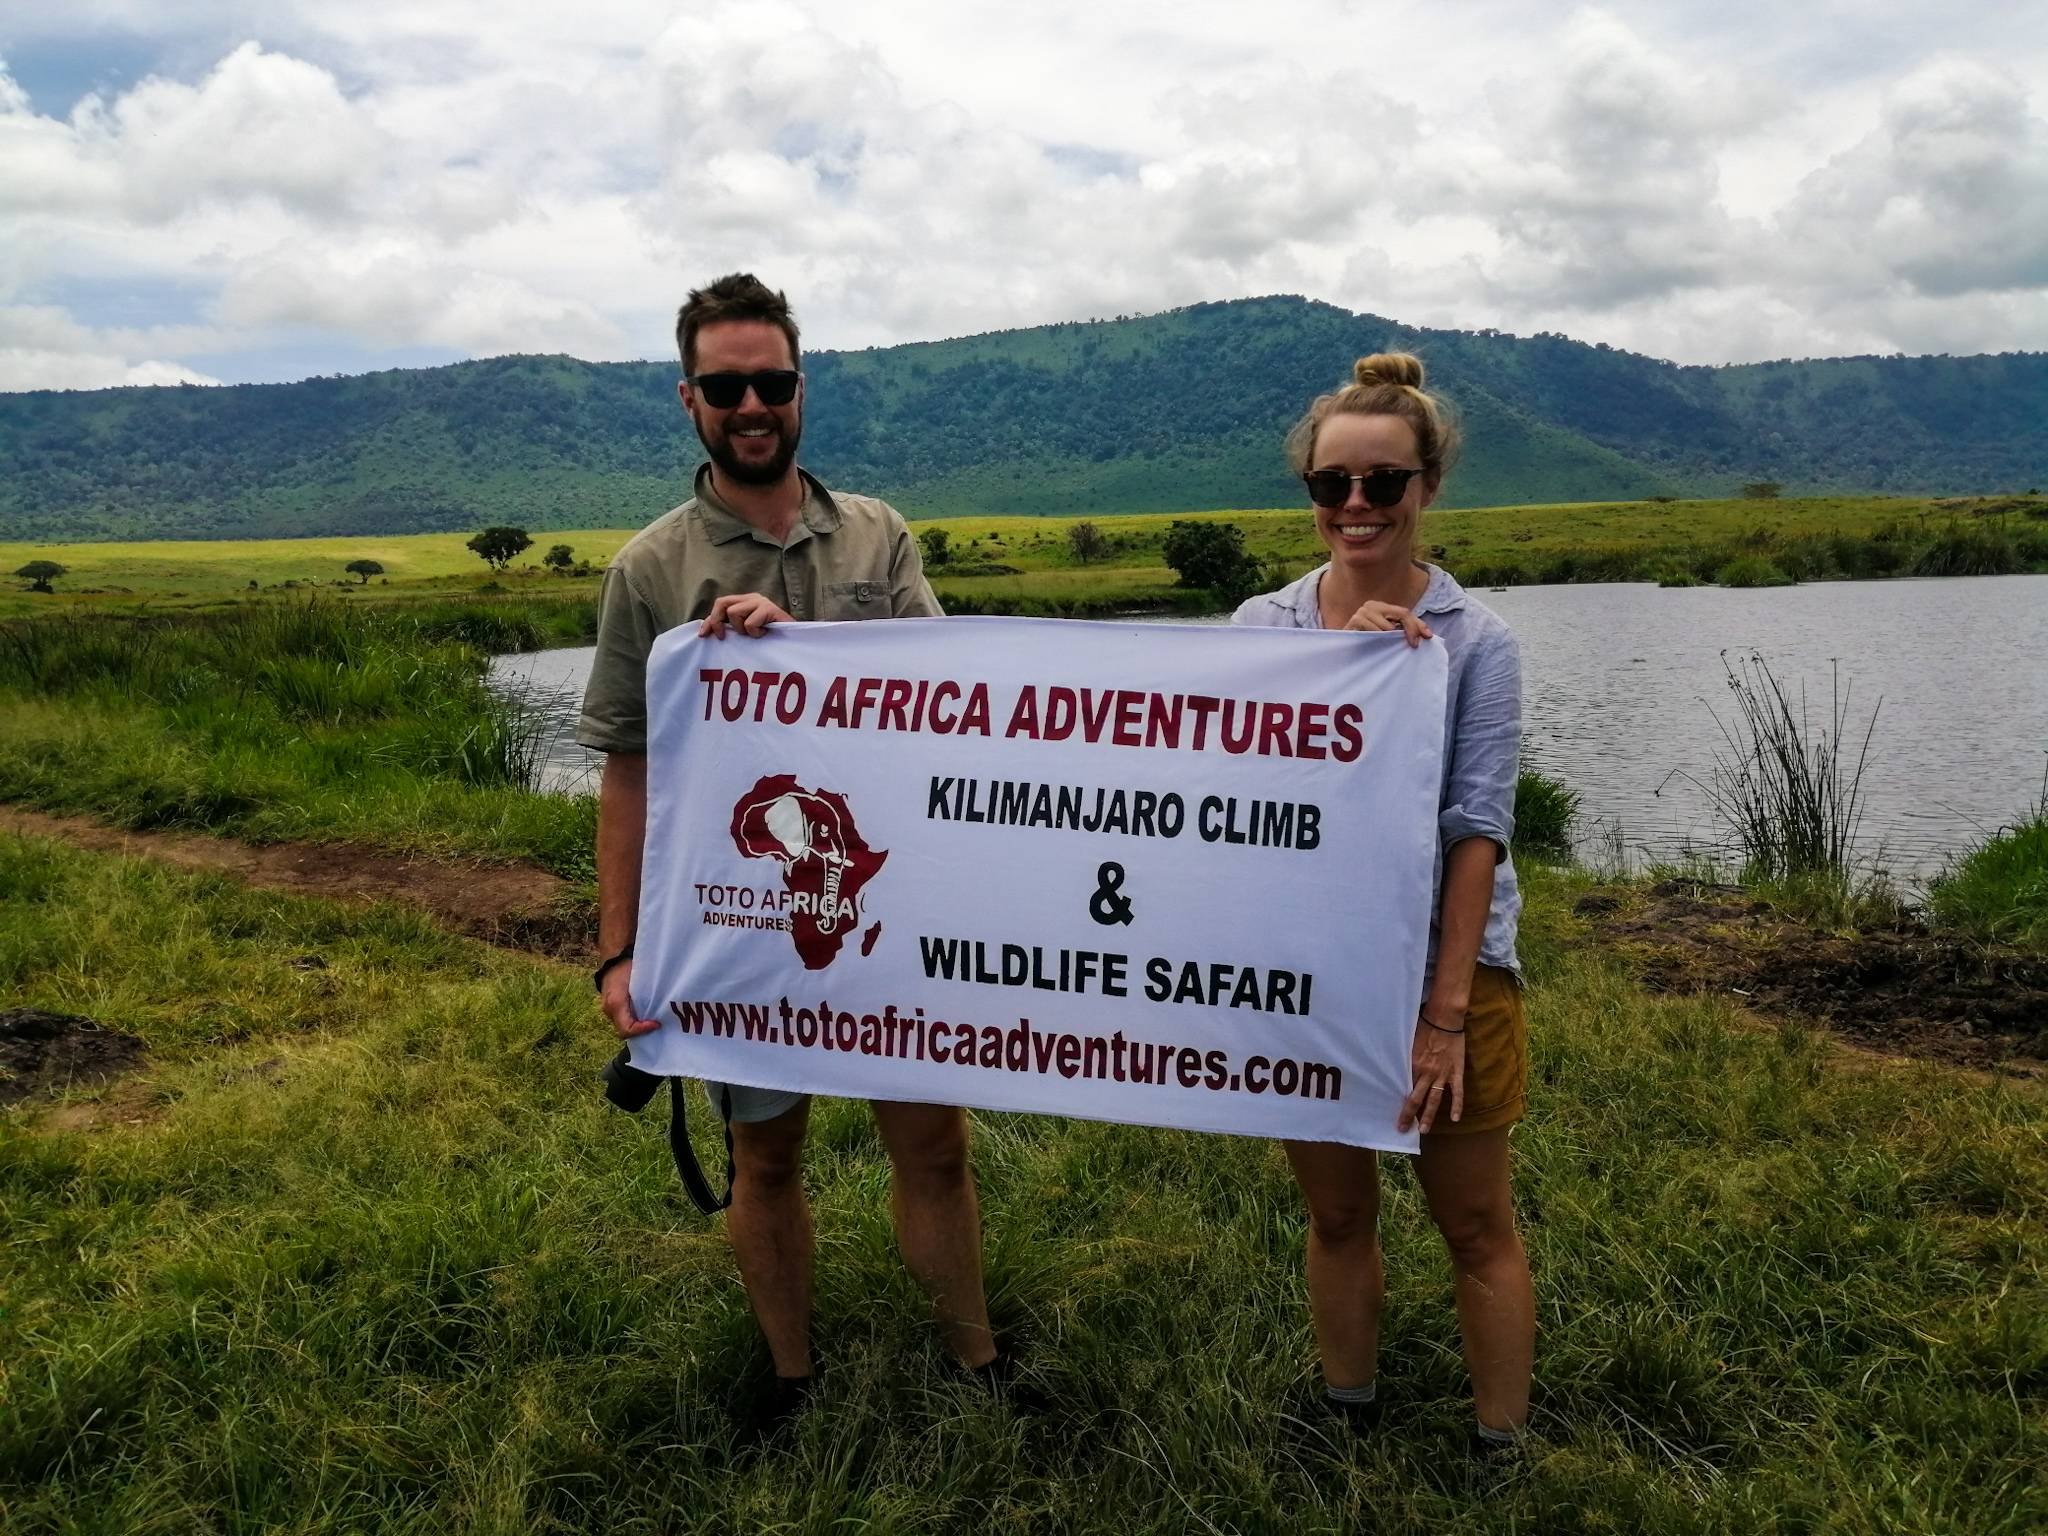 African Safari Holidays   Kilimanjaro climbing tours and packages   Tanzania Family Safari  Best and Recommended tour operator in Tanzania